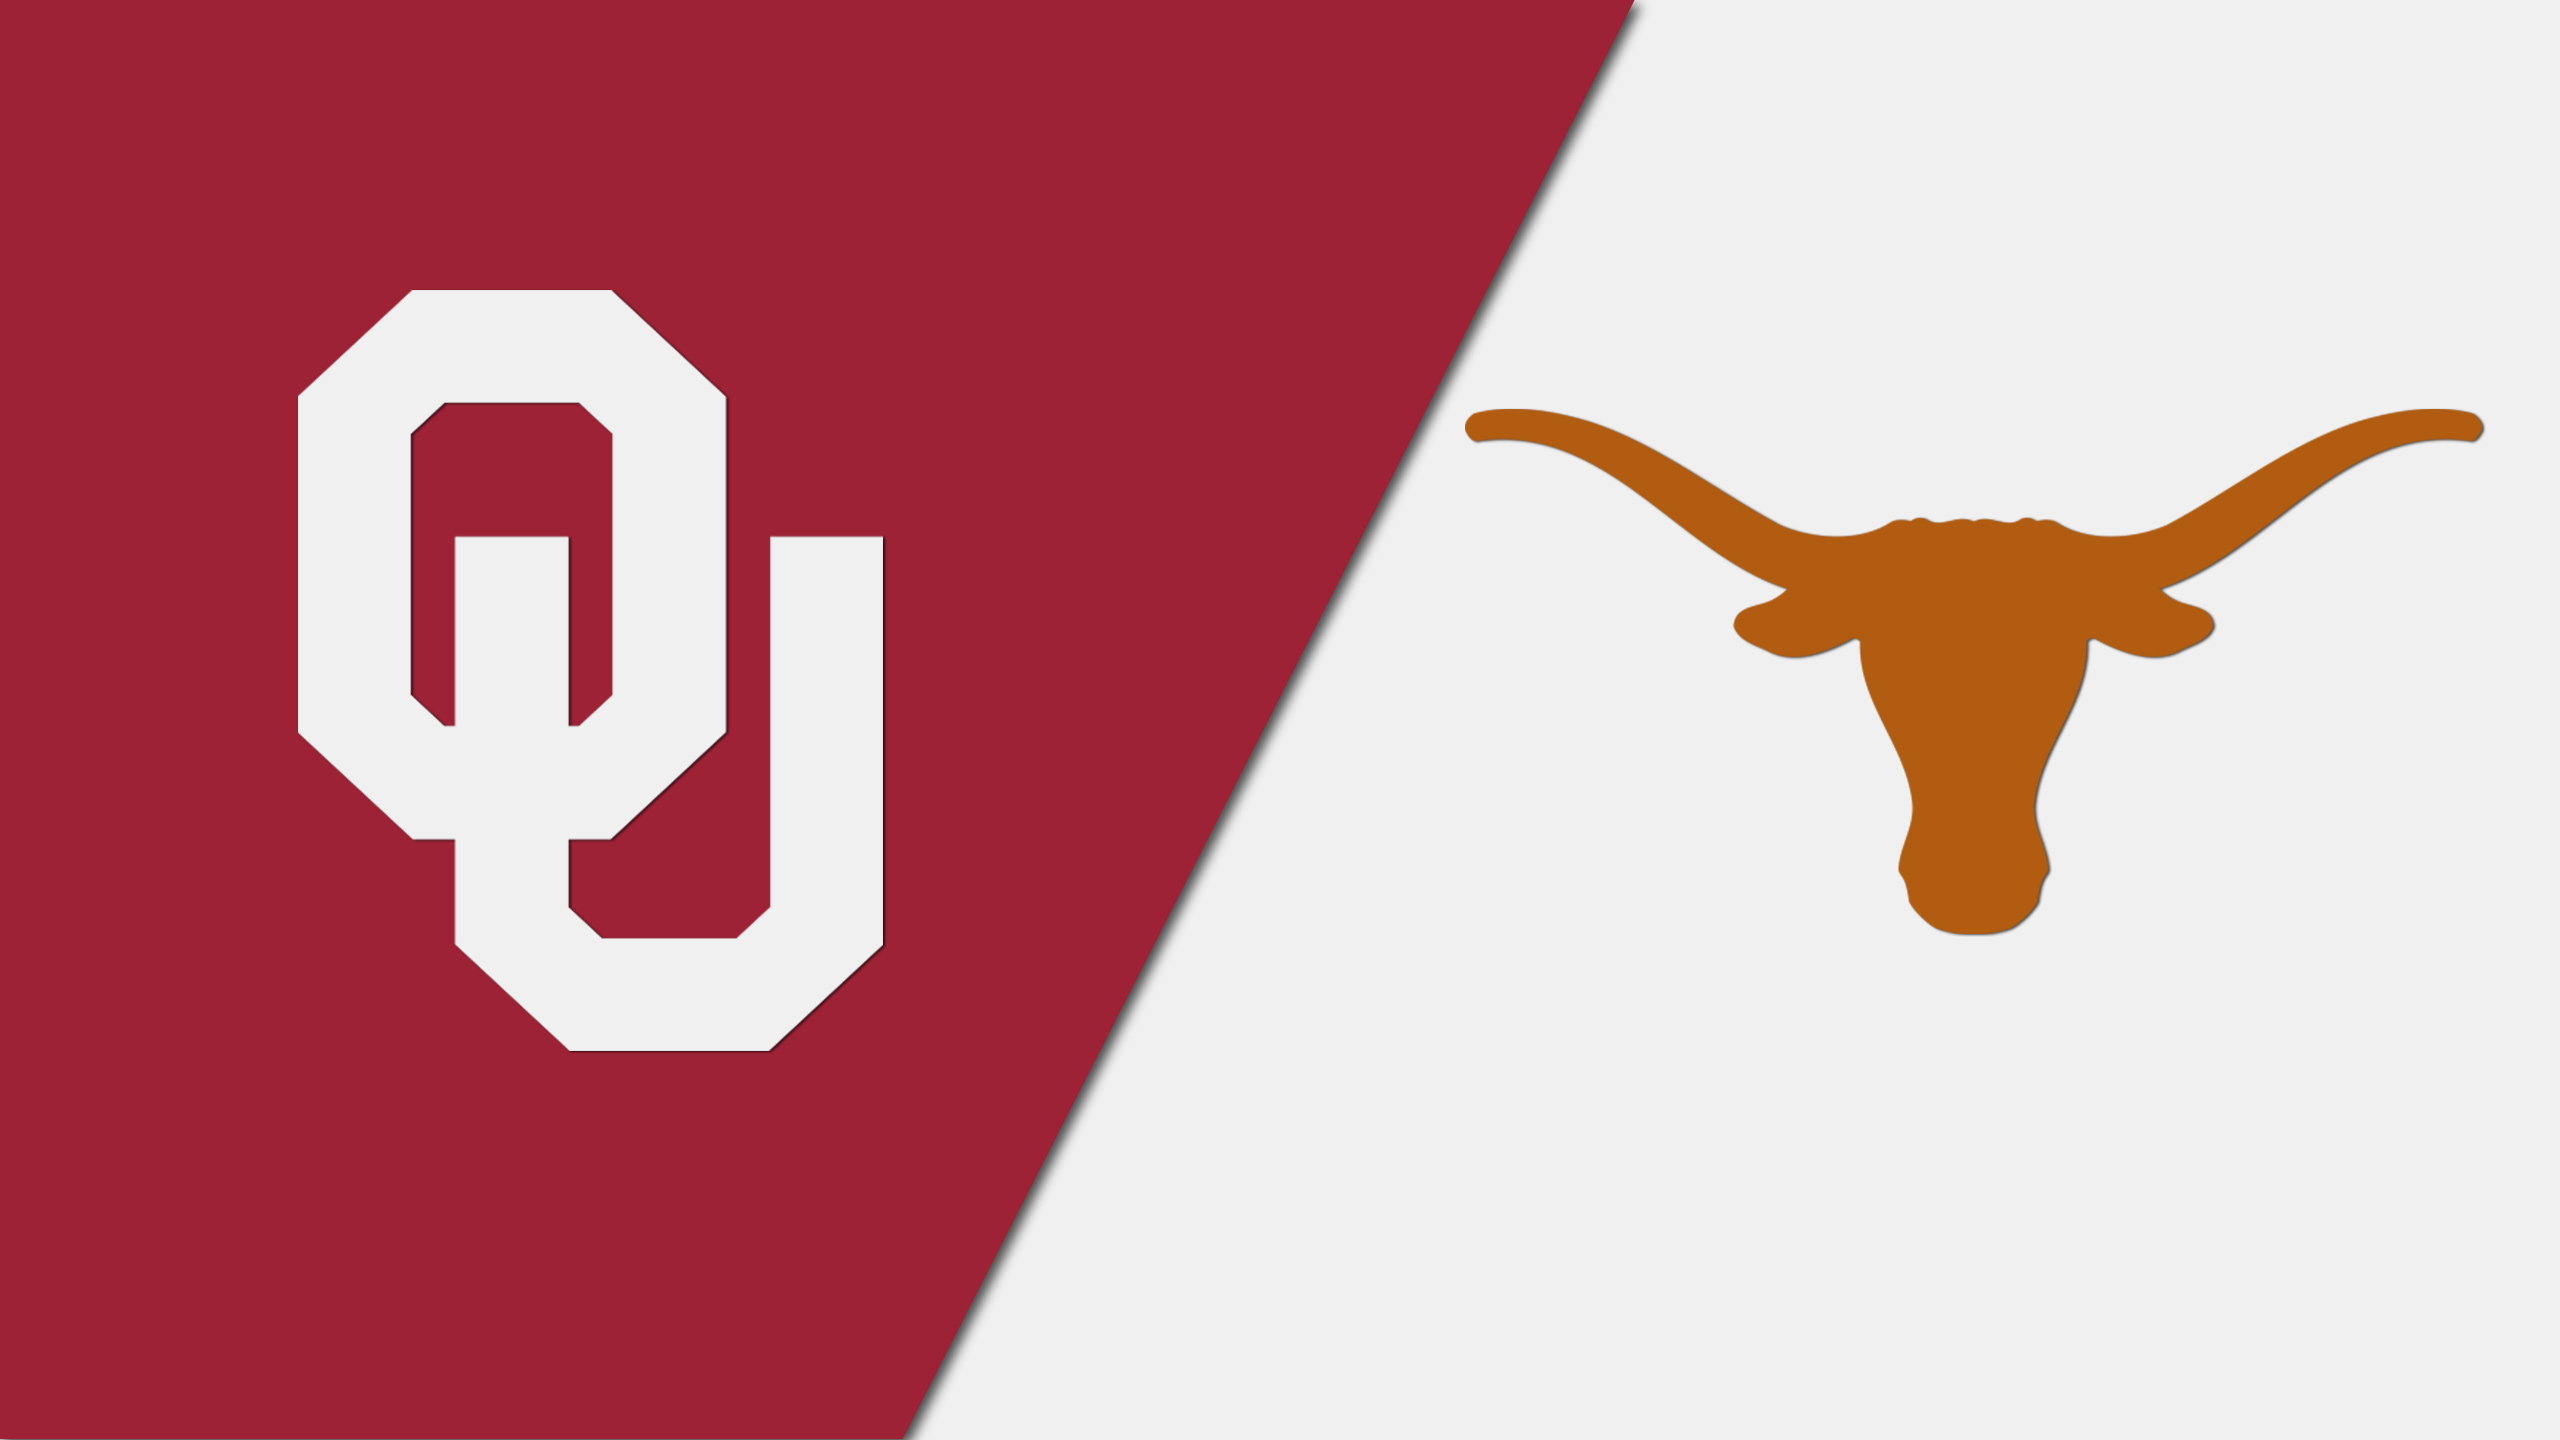 #1 Oklahoma vs. #10 Texas (Softball)